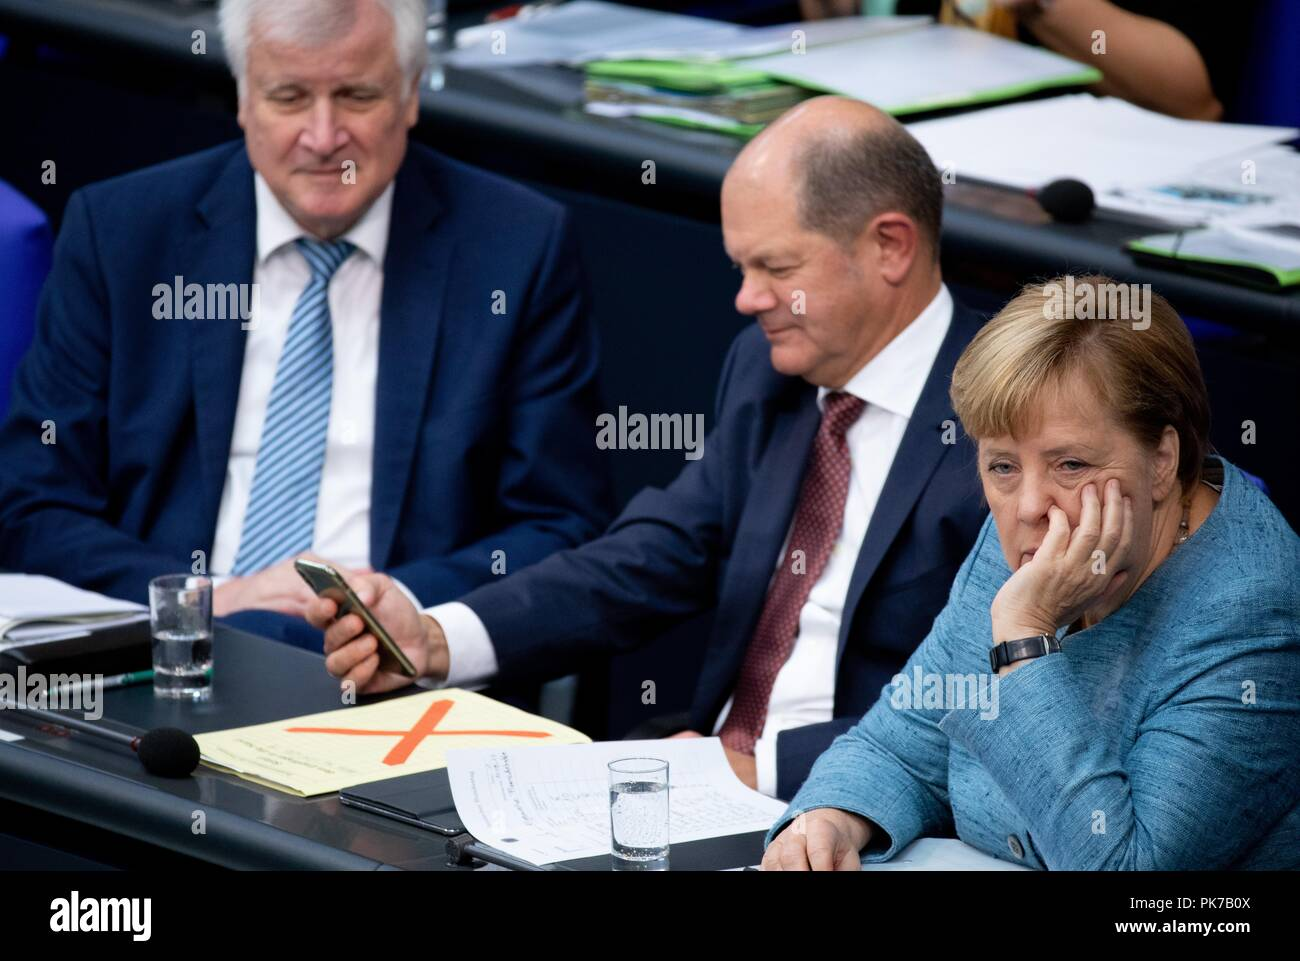 Berlin, Germany. 11 September 2018, Berlin: Horst Seehofer (l-r, CSU), Federal Minister of the Interior, for Building and Home Affairs, Olaf Scholz (SPD), Federal Minister of Finance, and Chancellor Angela Merkel (CDU) will attend the plenary session in the German Bundestag. The main topic of the 47th session of the 19th legislative period is the Federal Government's draft budget 2019 and the federal budget 2018 to 2022. Photo: Bernd von Jutrczenka/dpa Credit: dpa picture alliance/Alamy Live News - Stock Image